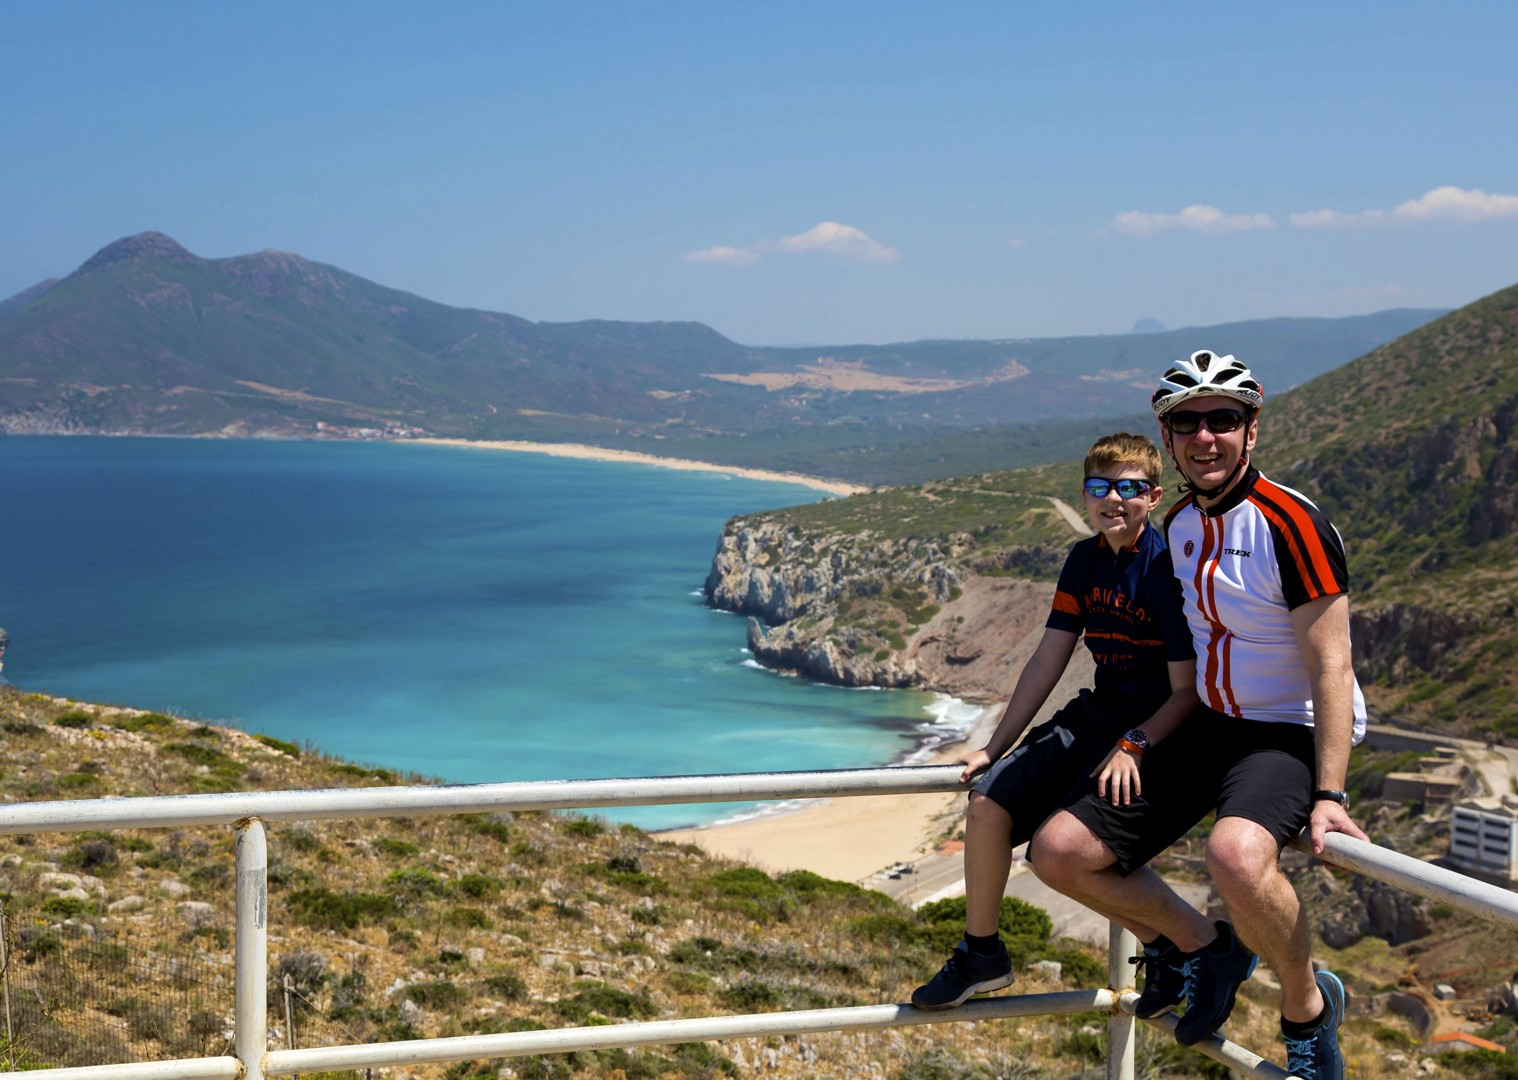 SardiniaCycling-41.jpg - Italy - Sardinia - Coasts and Islands - Self-Guided Family Cycling Holiday - Family Cycling